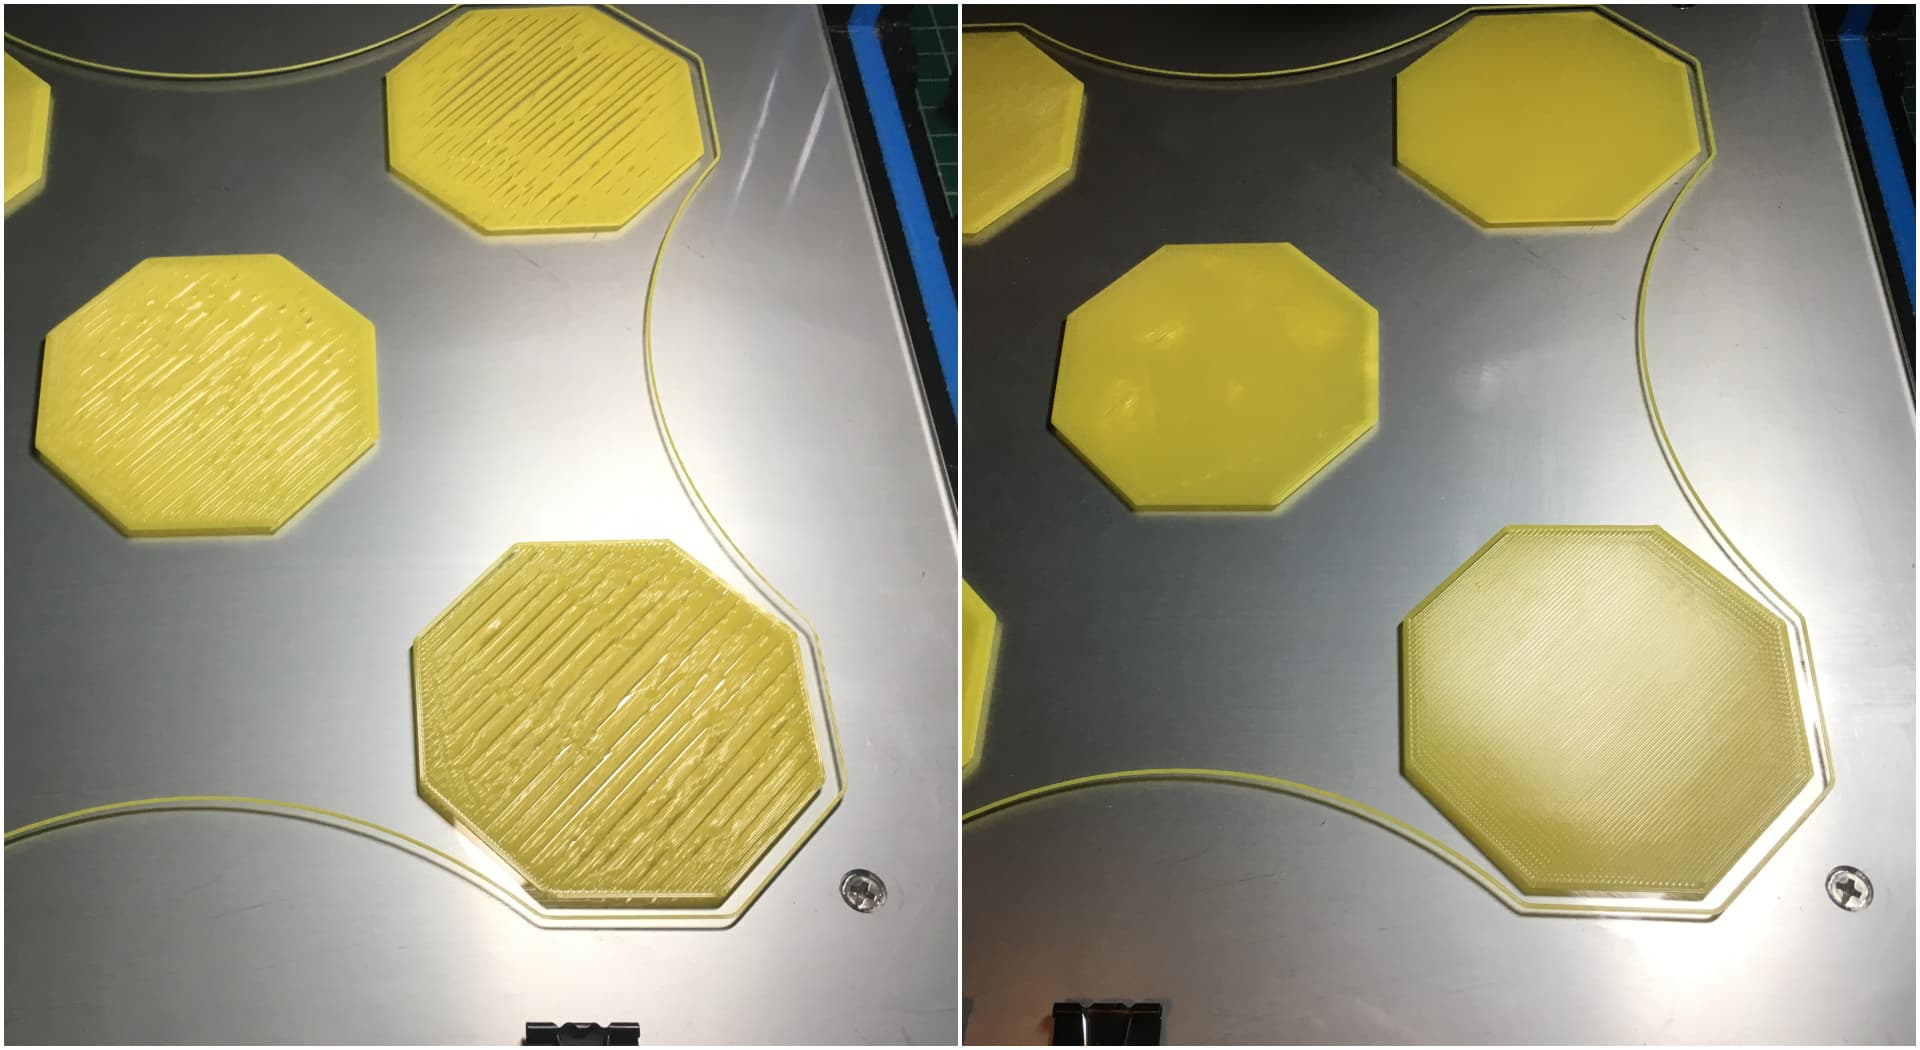 Mesh Bed Leveling: A Simple Guide | All3DP